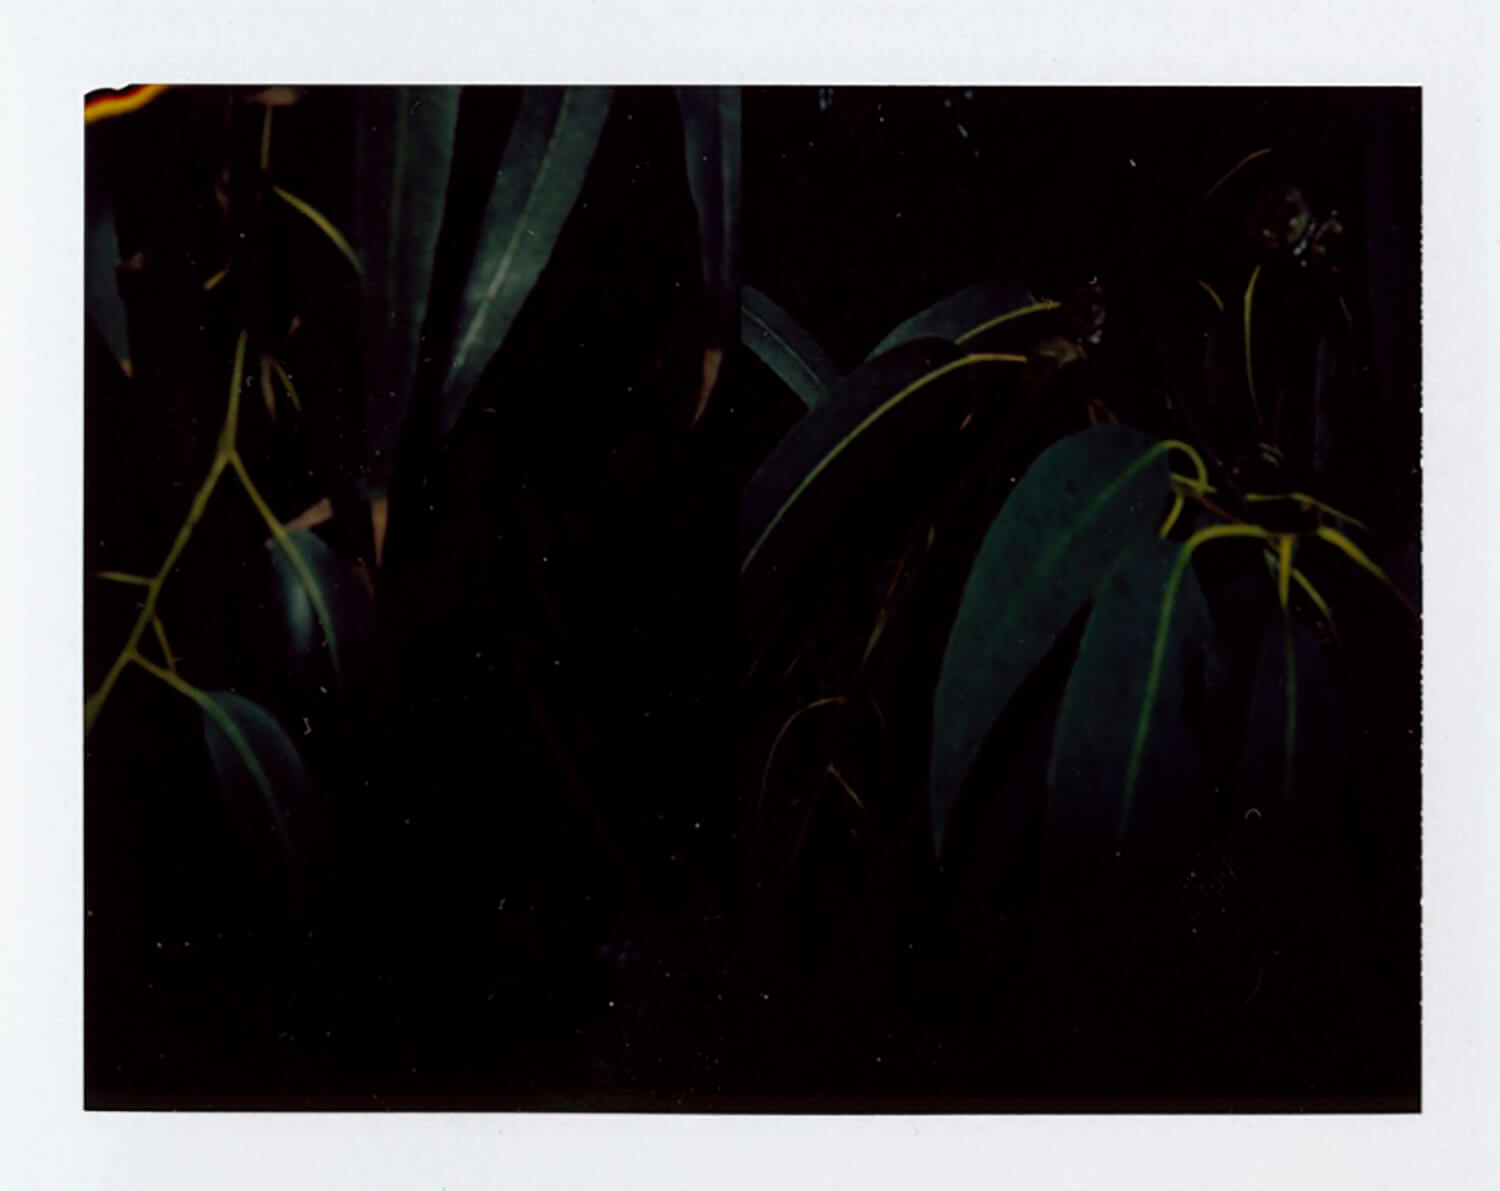 I.D.082, The Polaroid Revolutionary Workers, 2013, Polaroid Picture, 107mm x 86mm